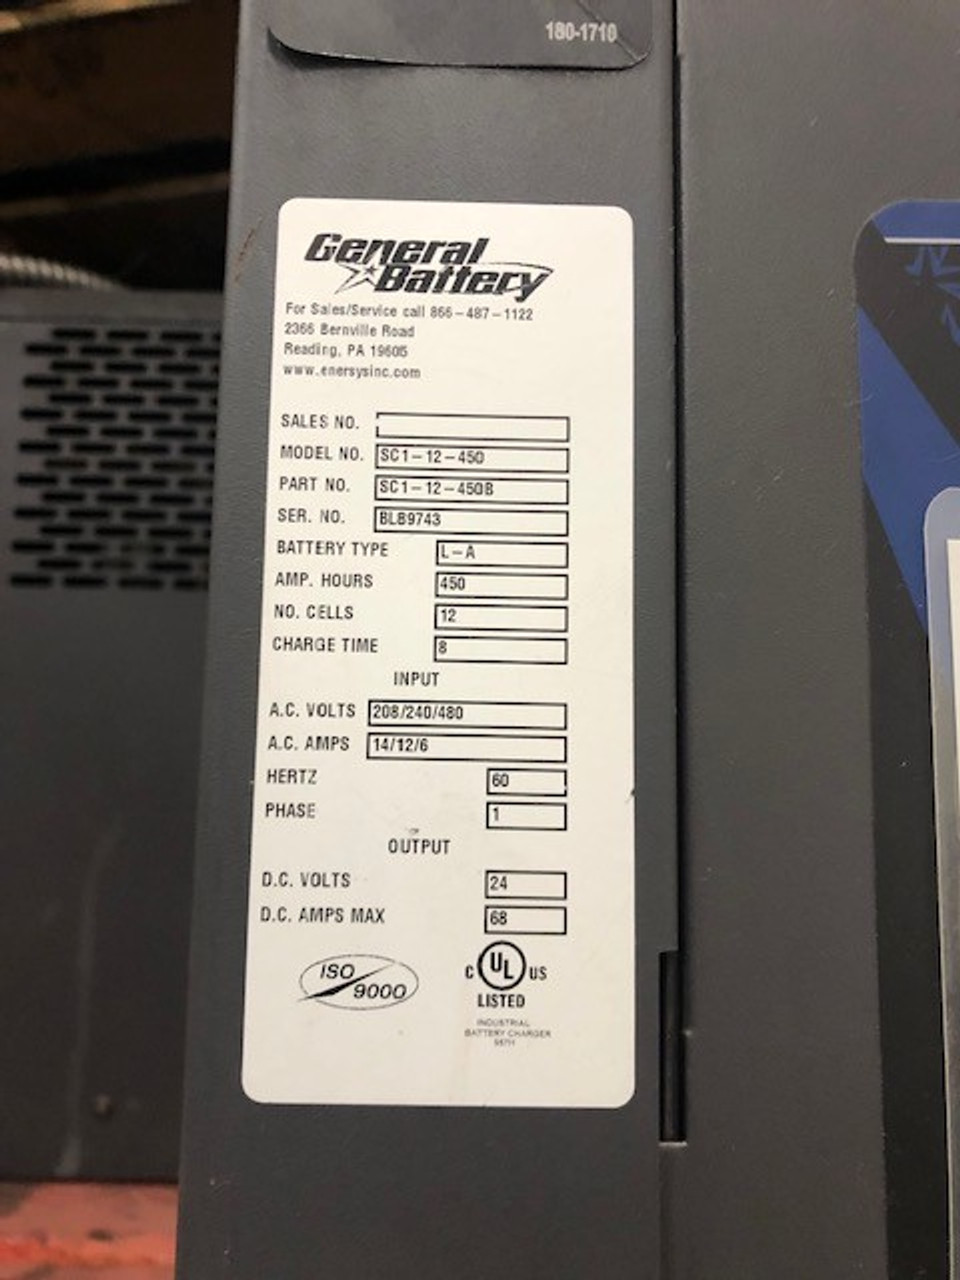 1 phase 24 volt 208/240/480 volts in battery charger